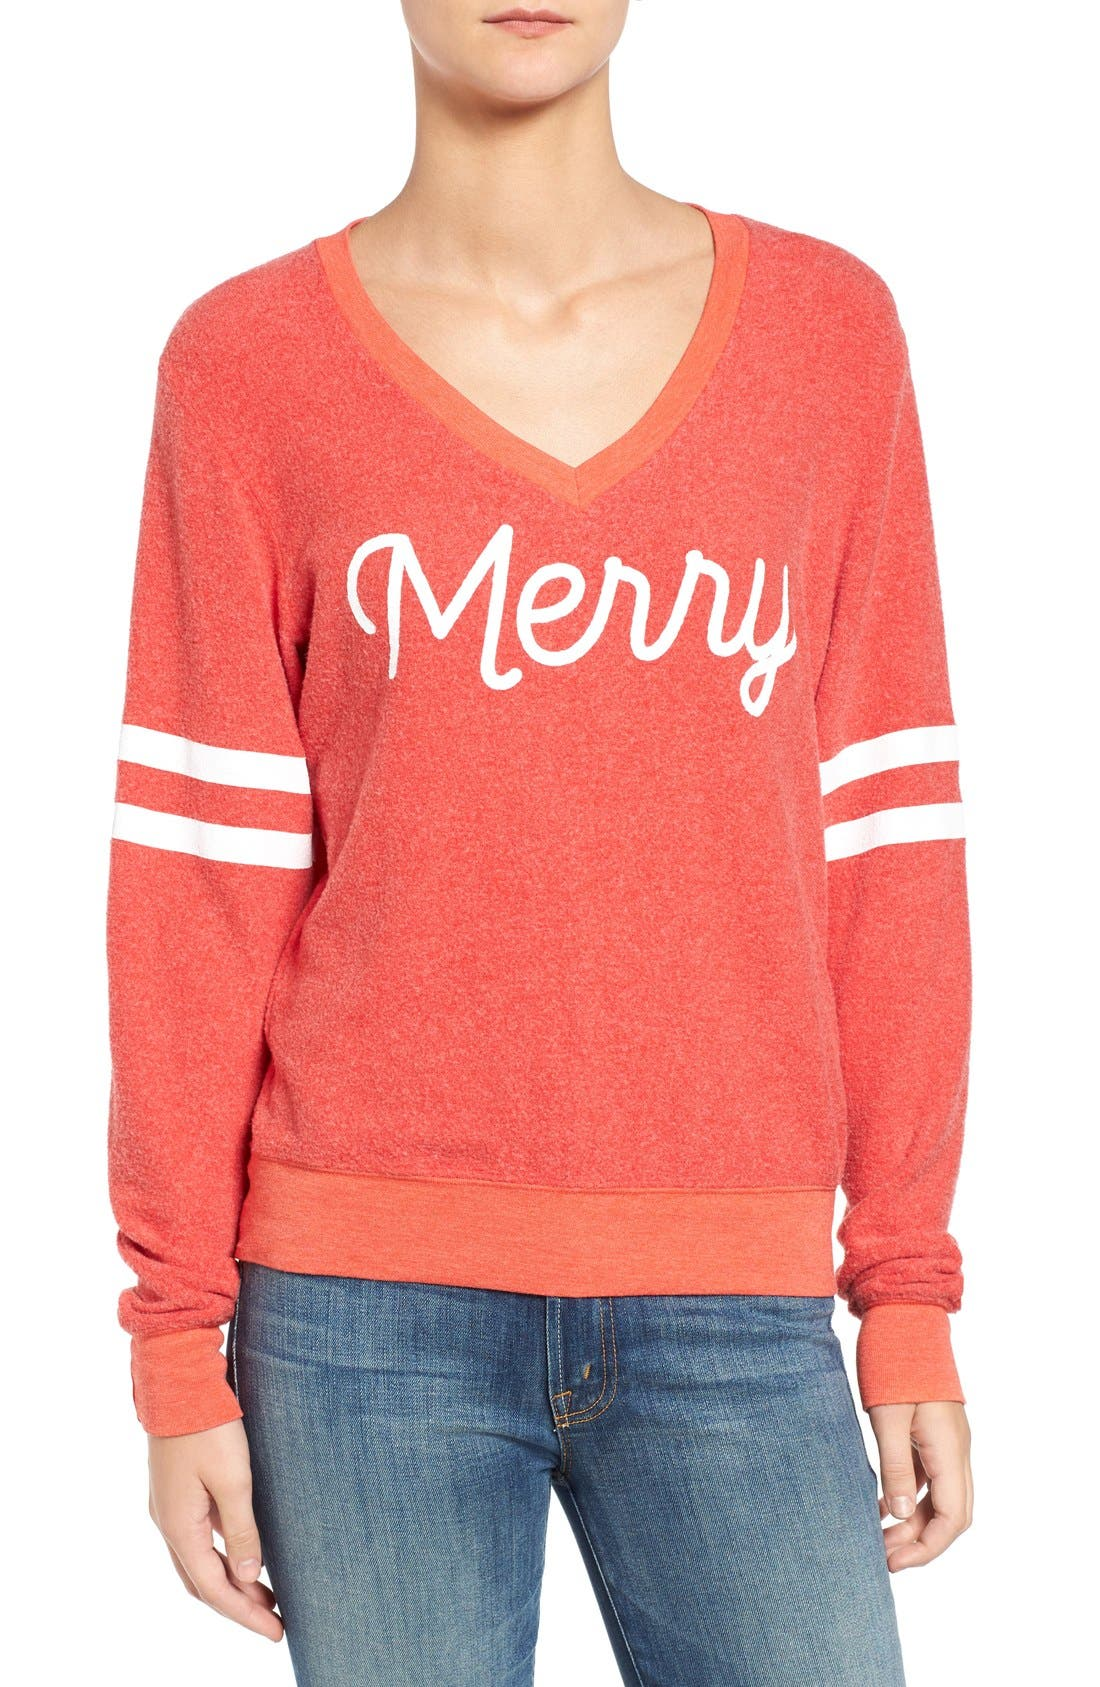 Main Image - Wildfox Baggy Beach Jumper - Merry Pullover